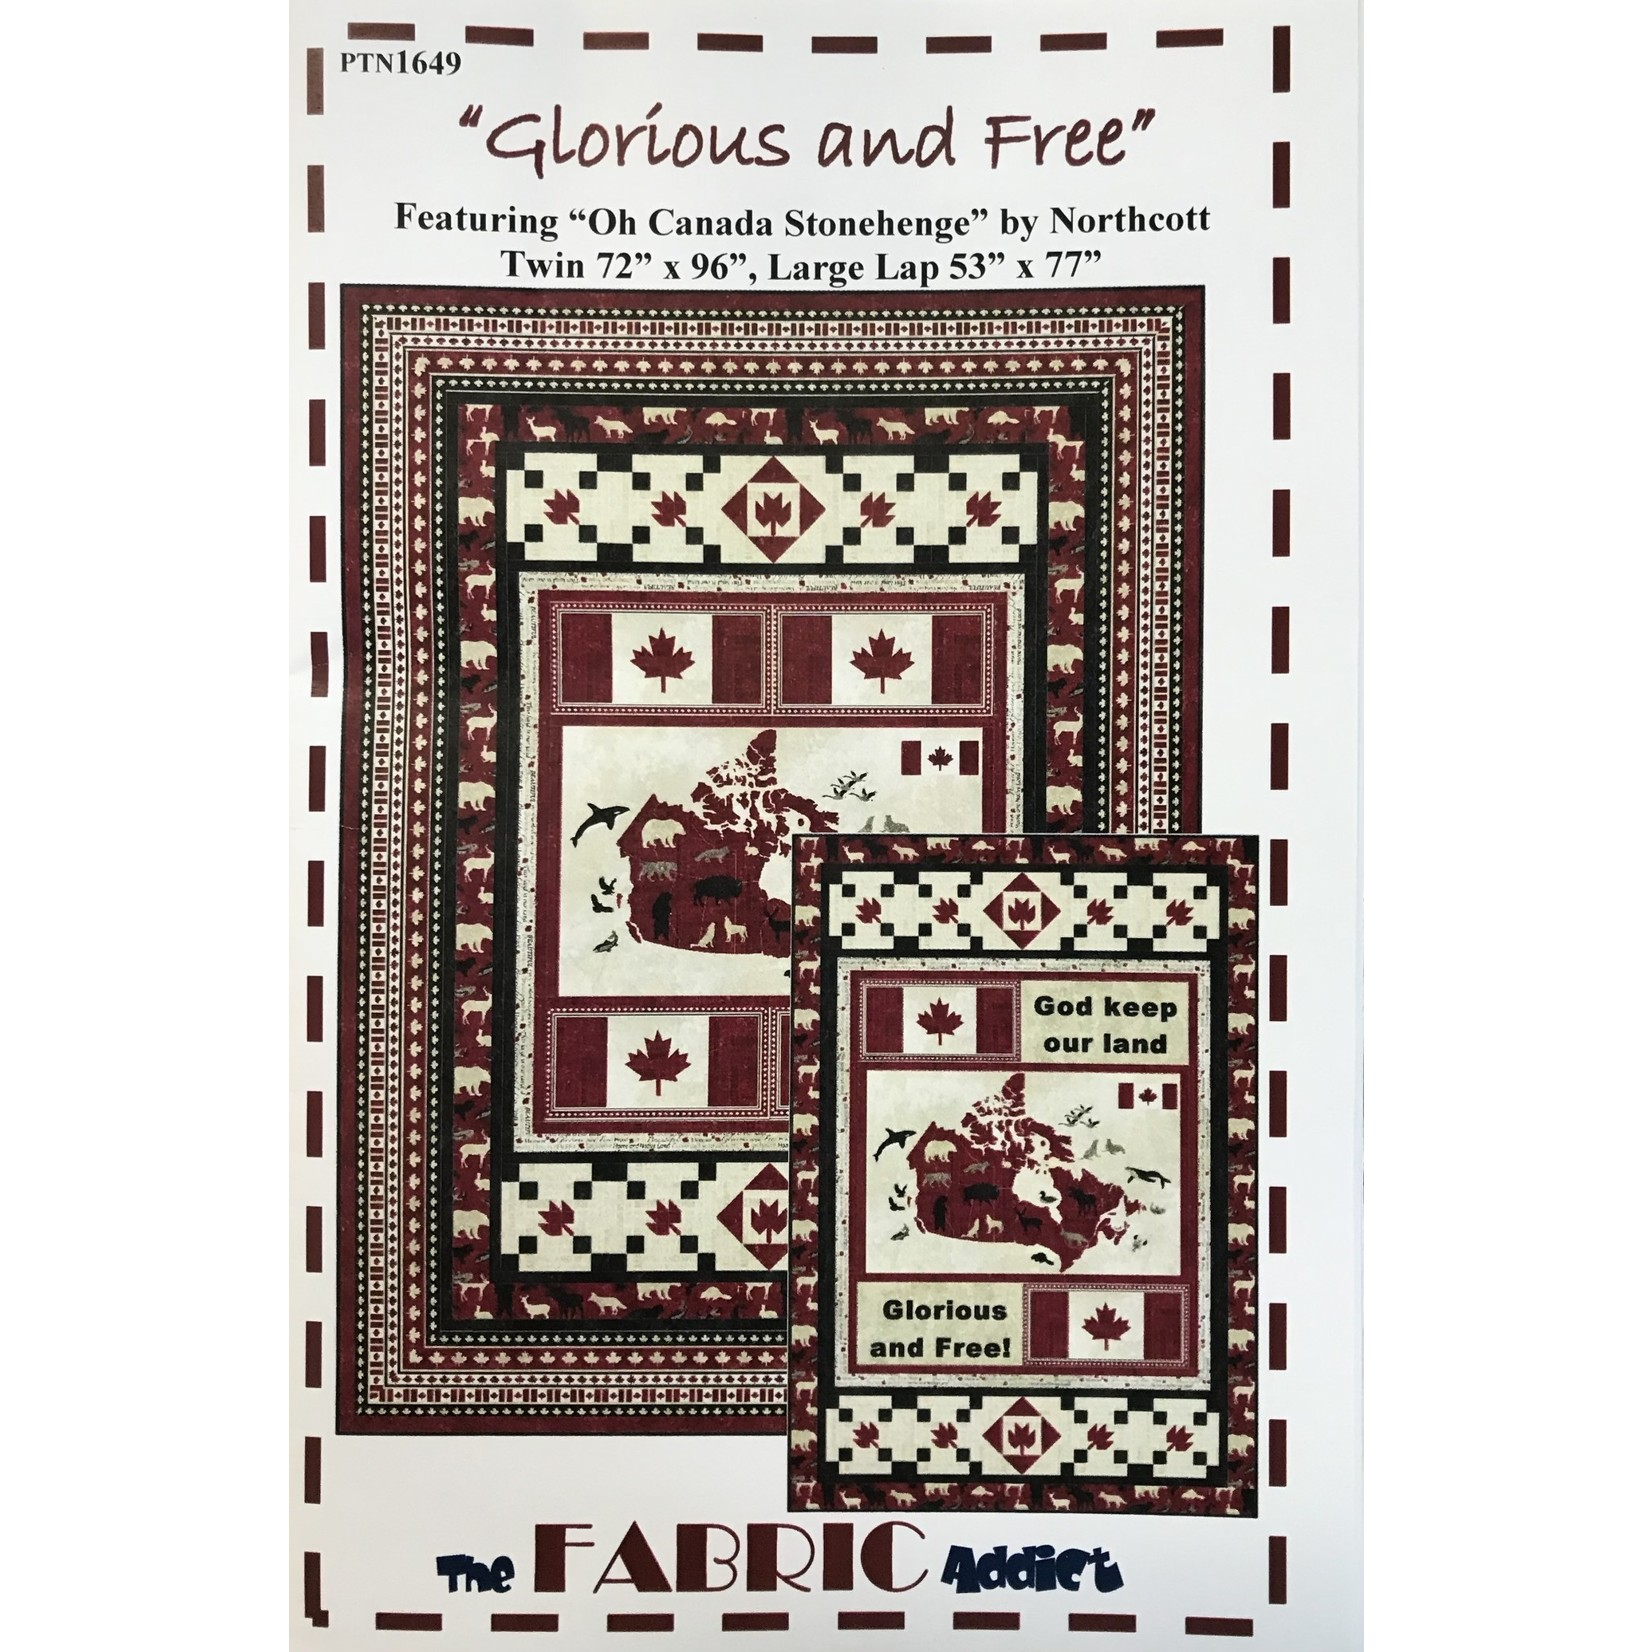 The Fabric Addict GLORIOUS AND FREE PATTERN